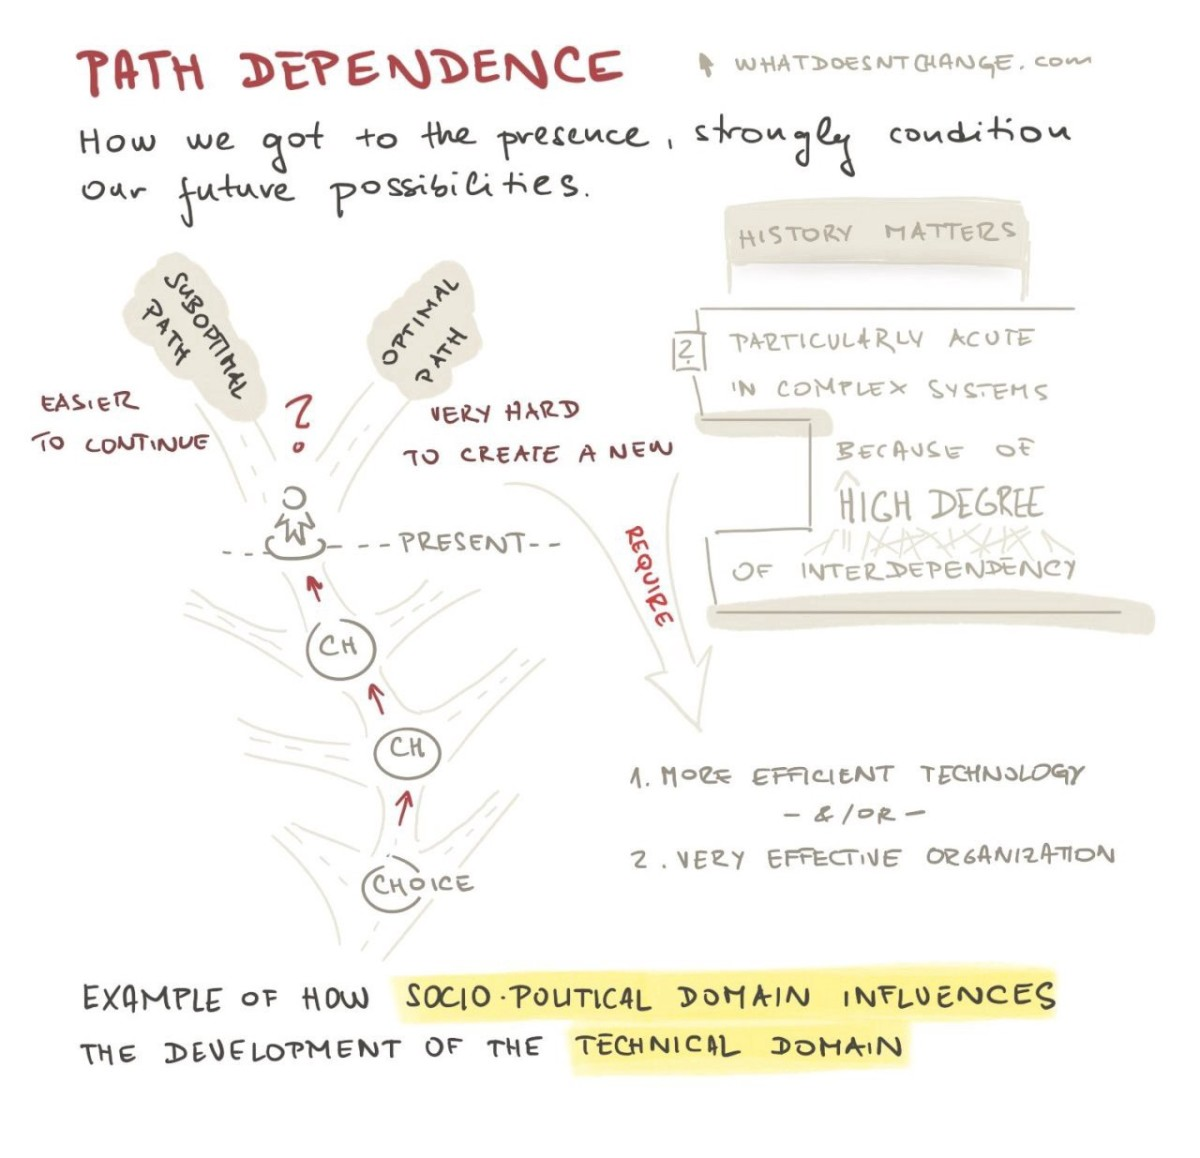 path dependence chart what doesn't change